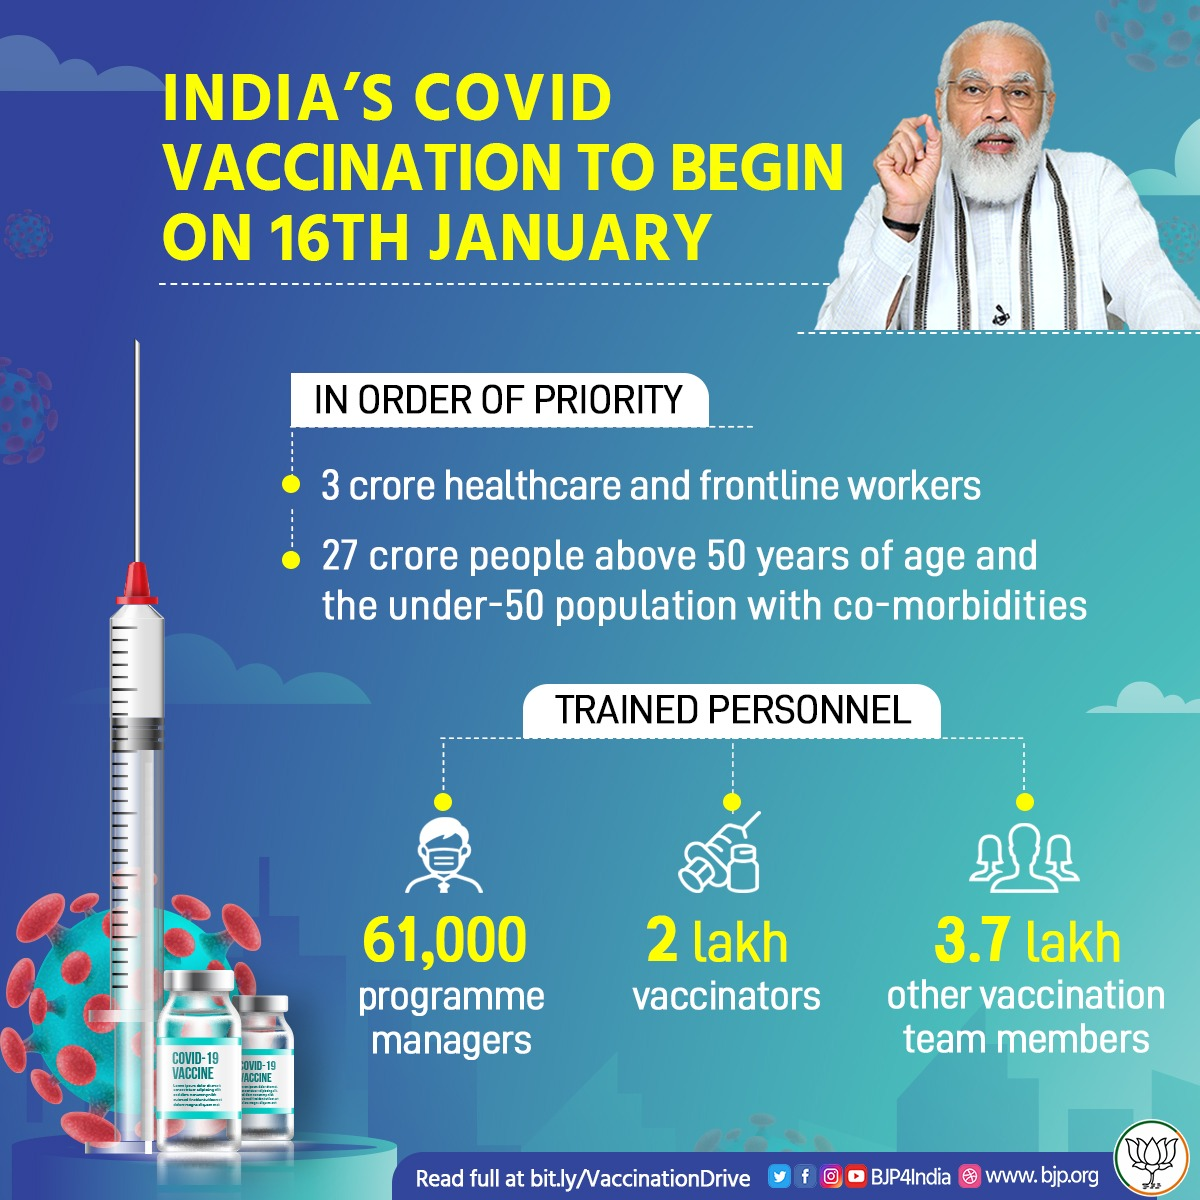 Under the leadership of PM @narendramodi, India is set to decisively defeat the #COVID pandemic as the nation-wide vaccination drive begins on 16th January.  30 crore healthcare and frontline workers, elderly and citizens with co-morbidities have been prioritised for inoculation.